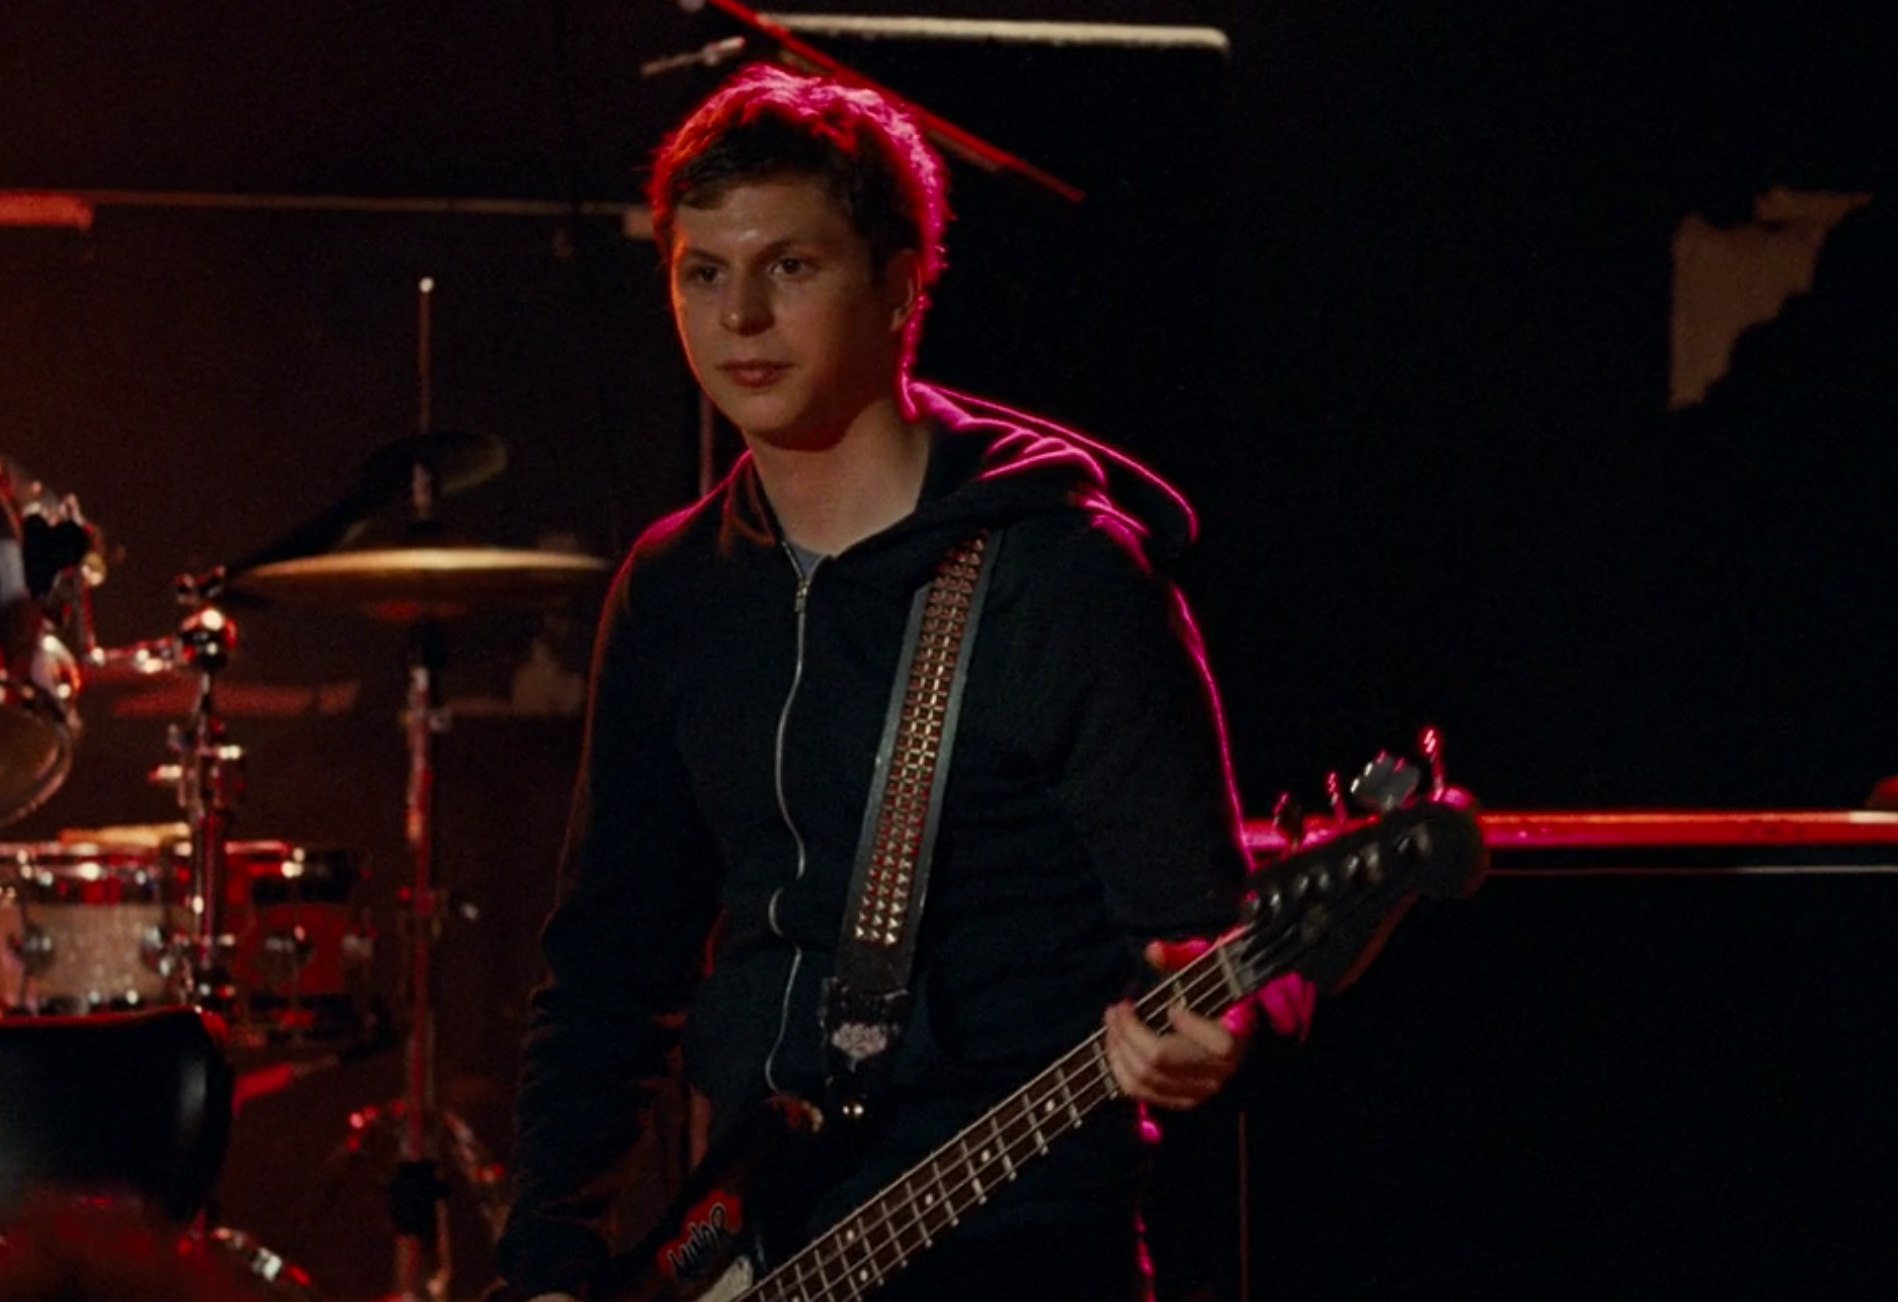 Michael Cera playing bass